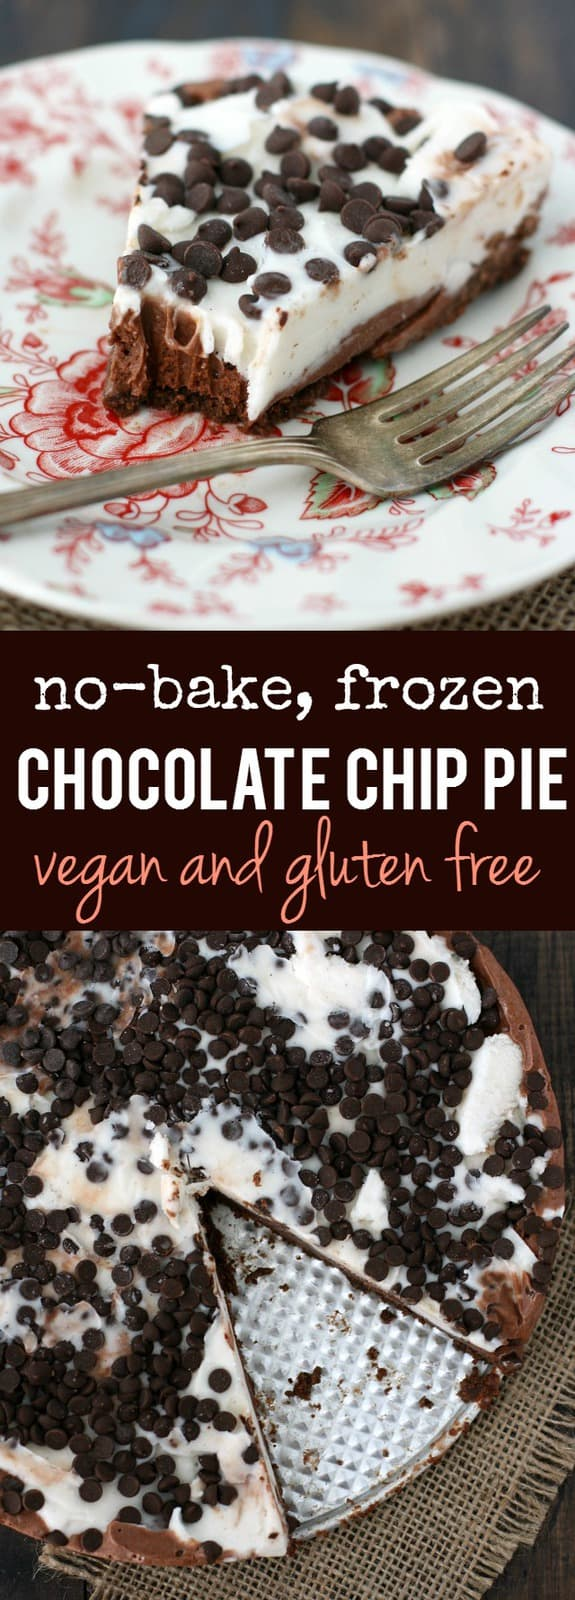 A creamy dairy free frozen pie with a cookie crust is a treat that everyone can enjoy! #glutenfree #shop ad #dairyfree4all